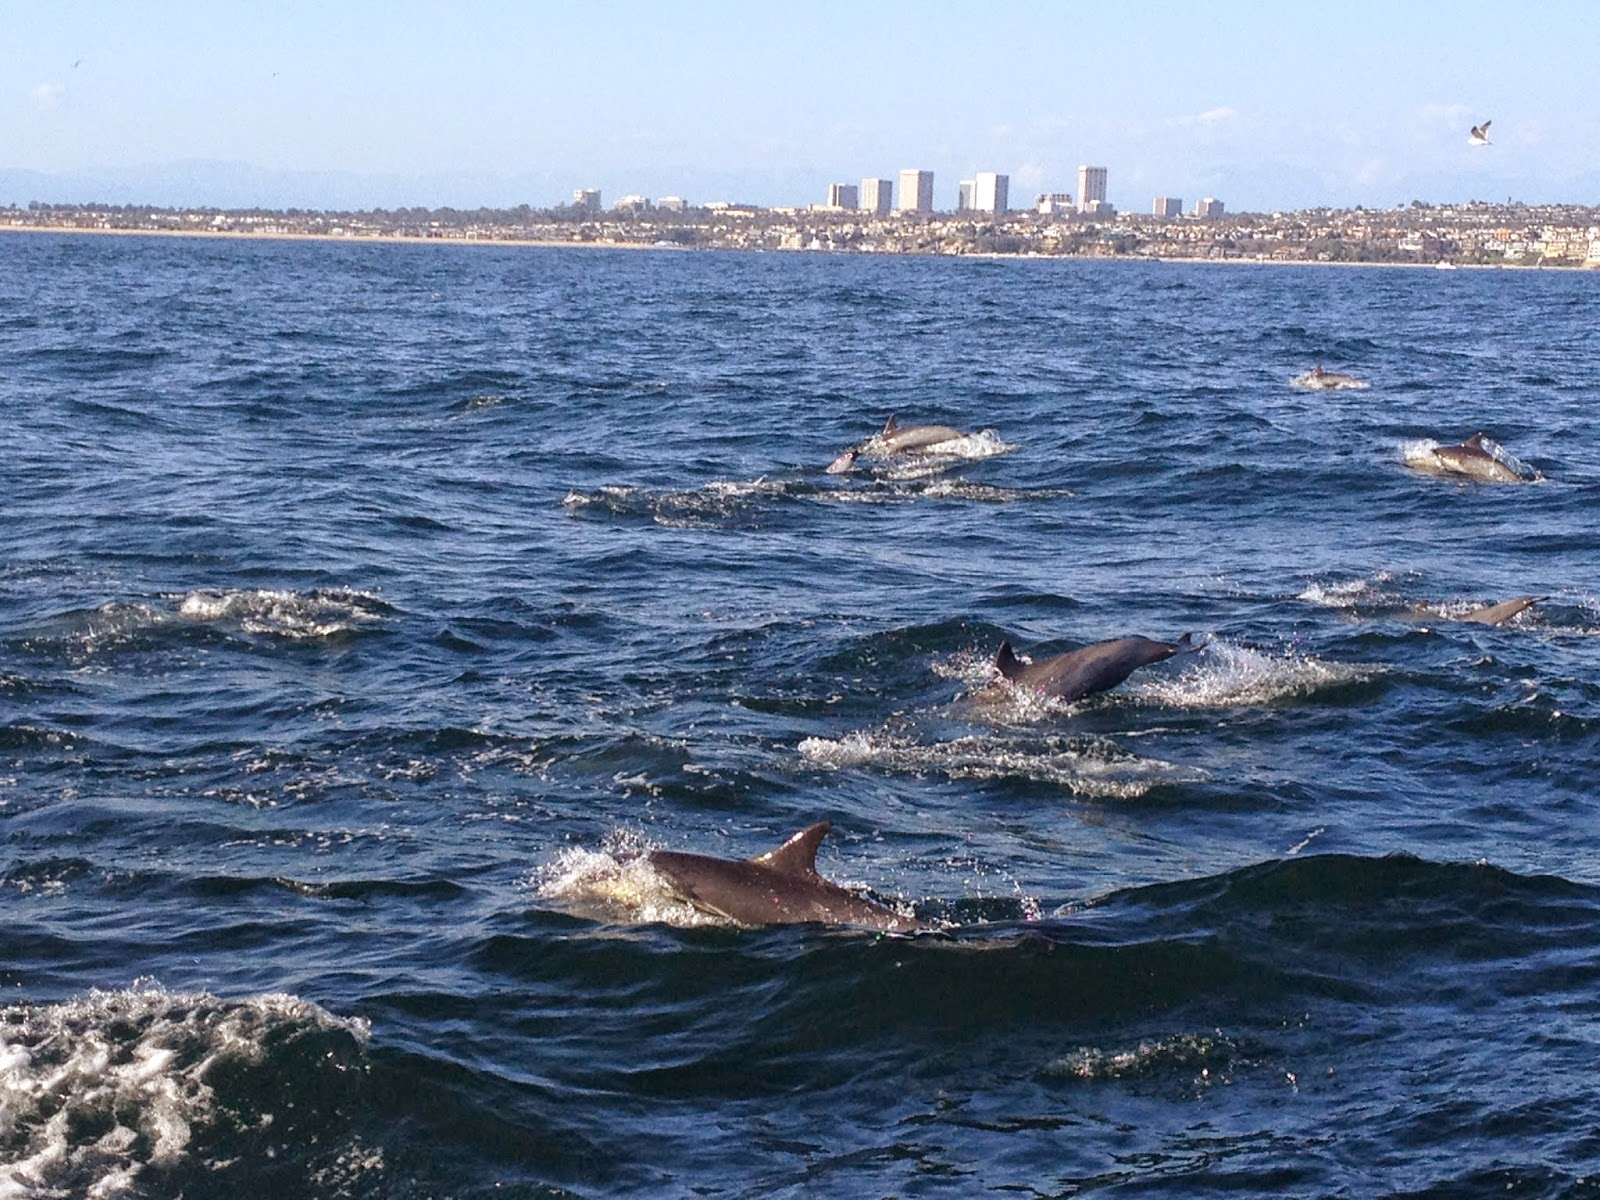 Wild Dolphins in Newport Beach, California